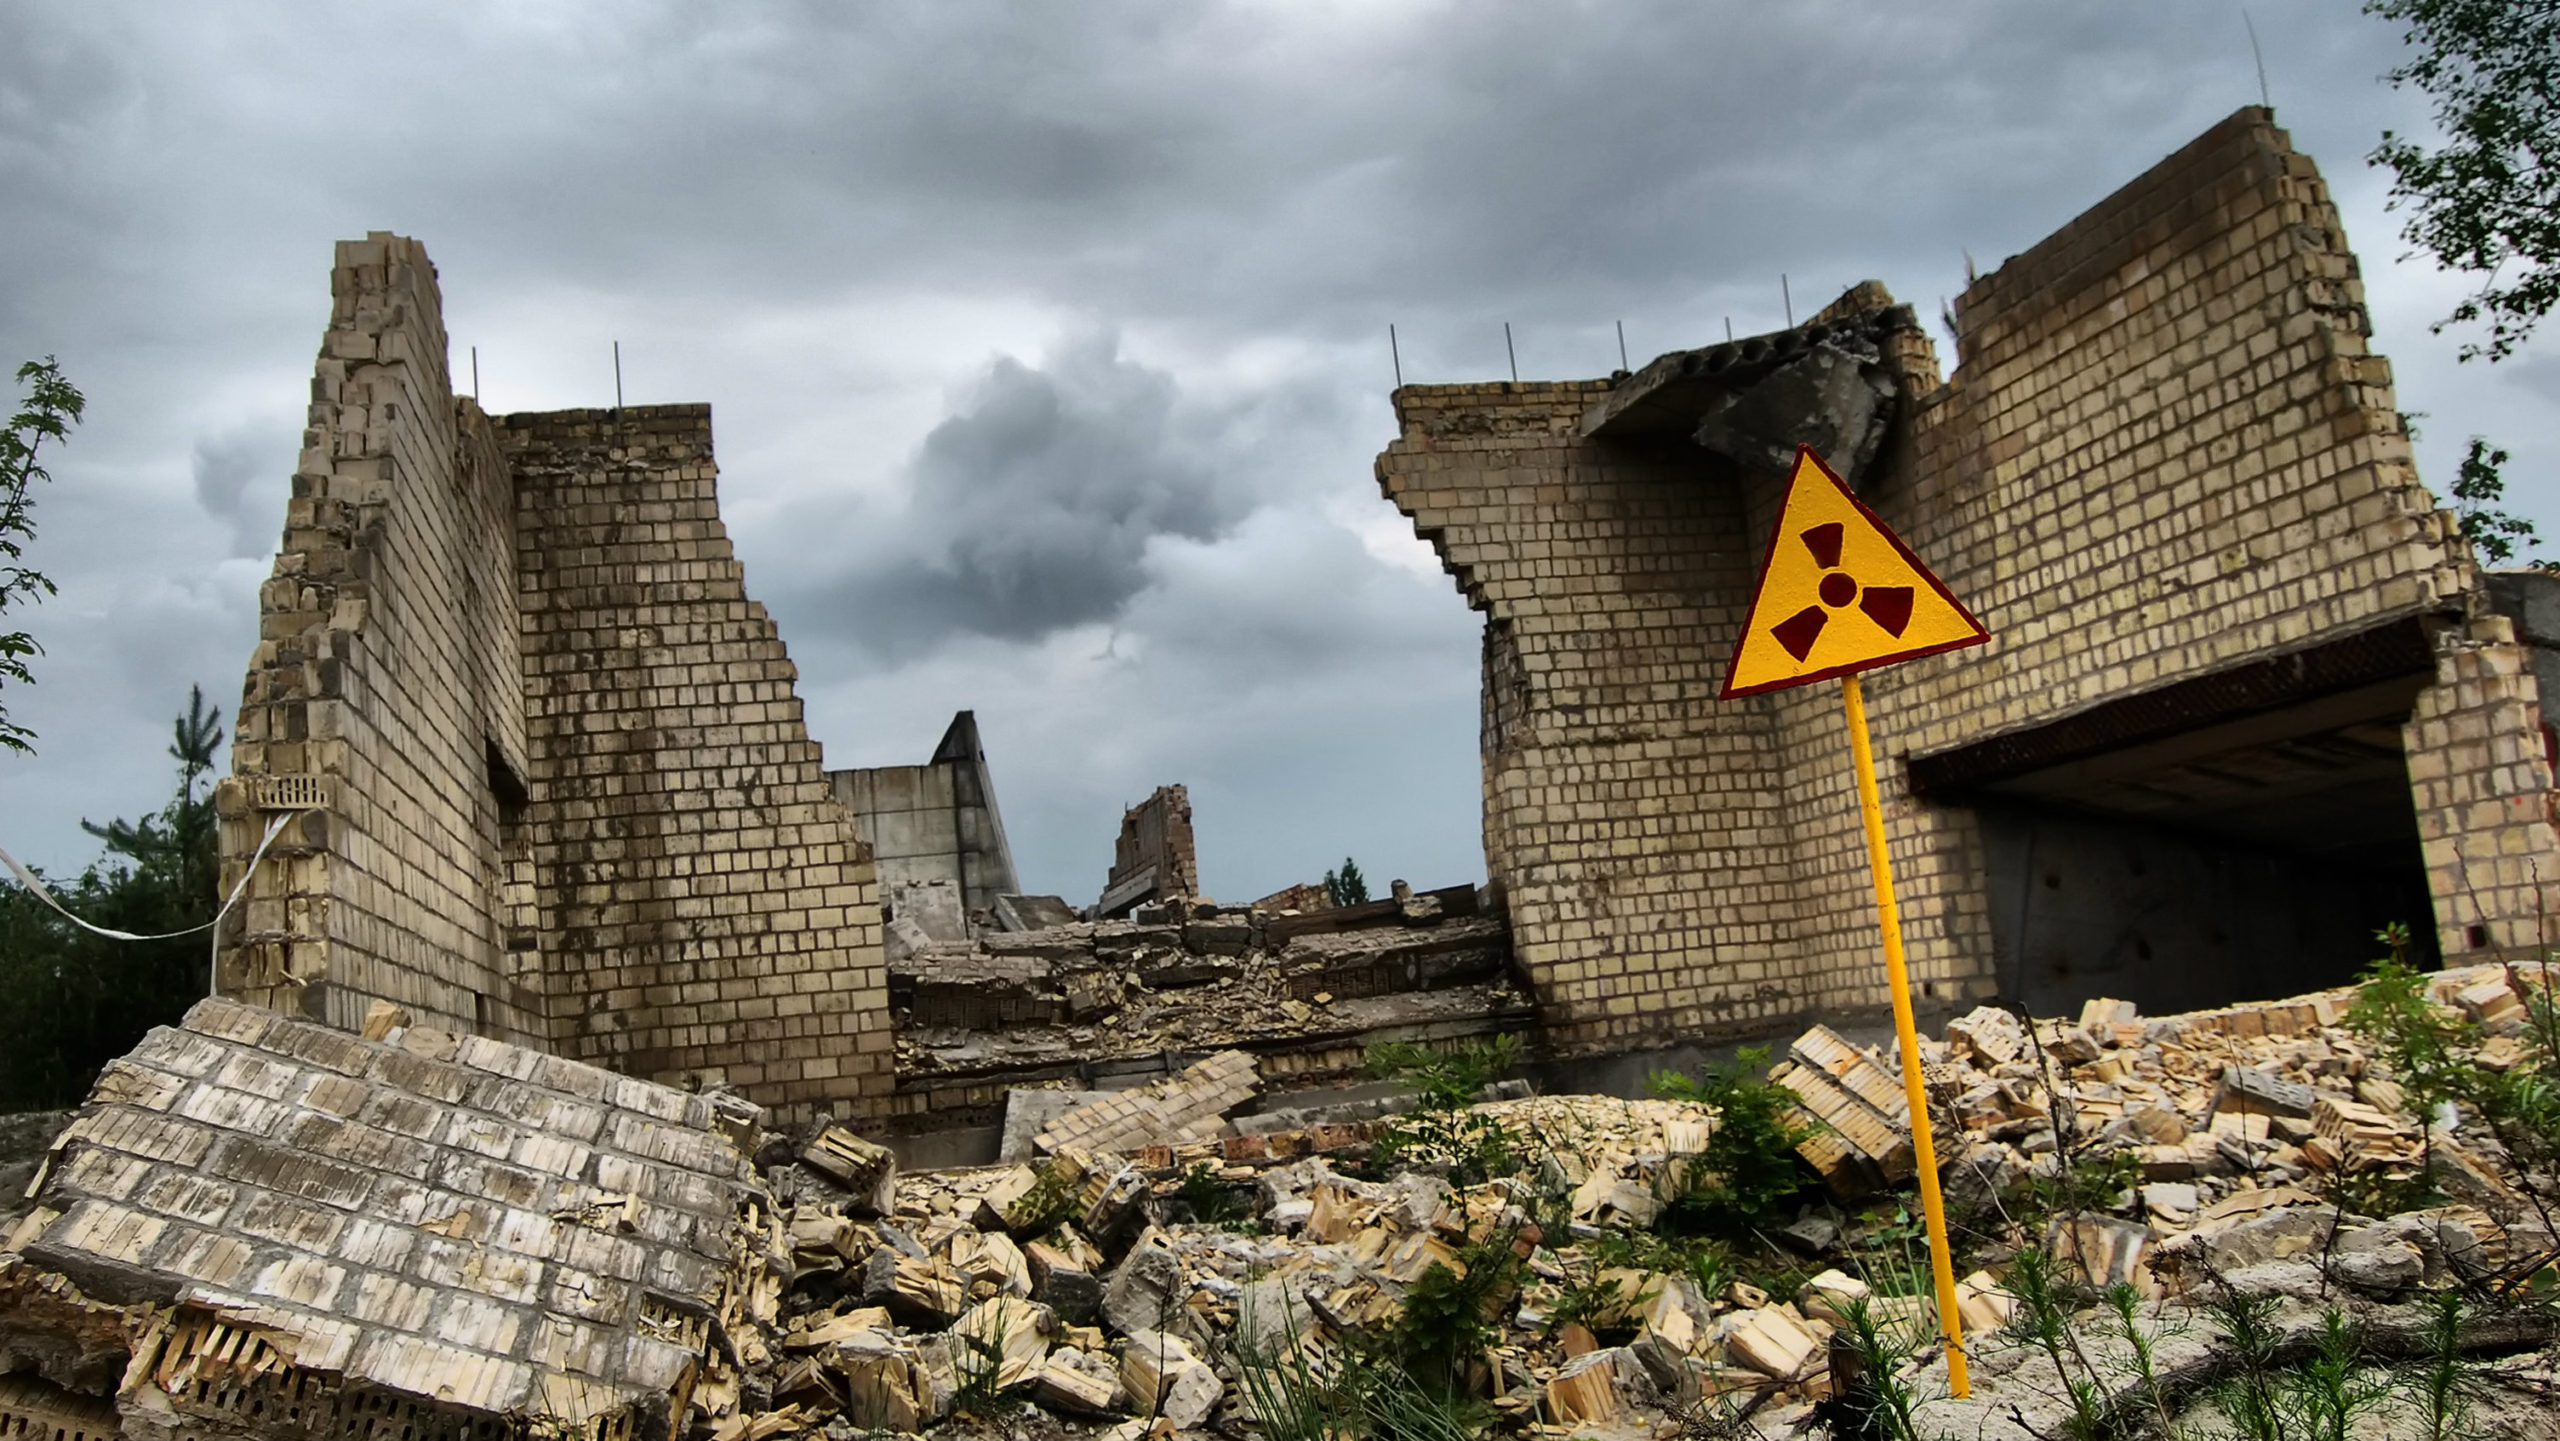 Chernobyl and Fukushima disasters: What happens to nuclear ...